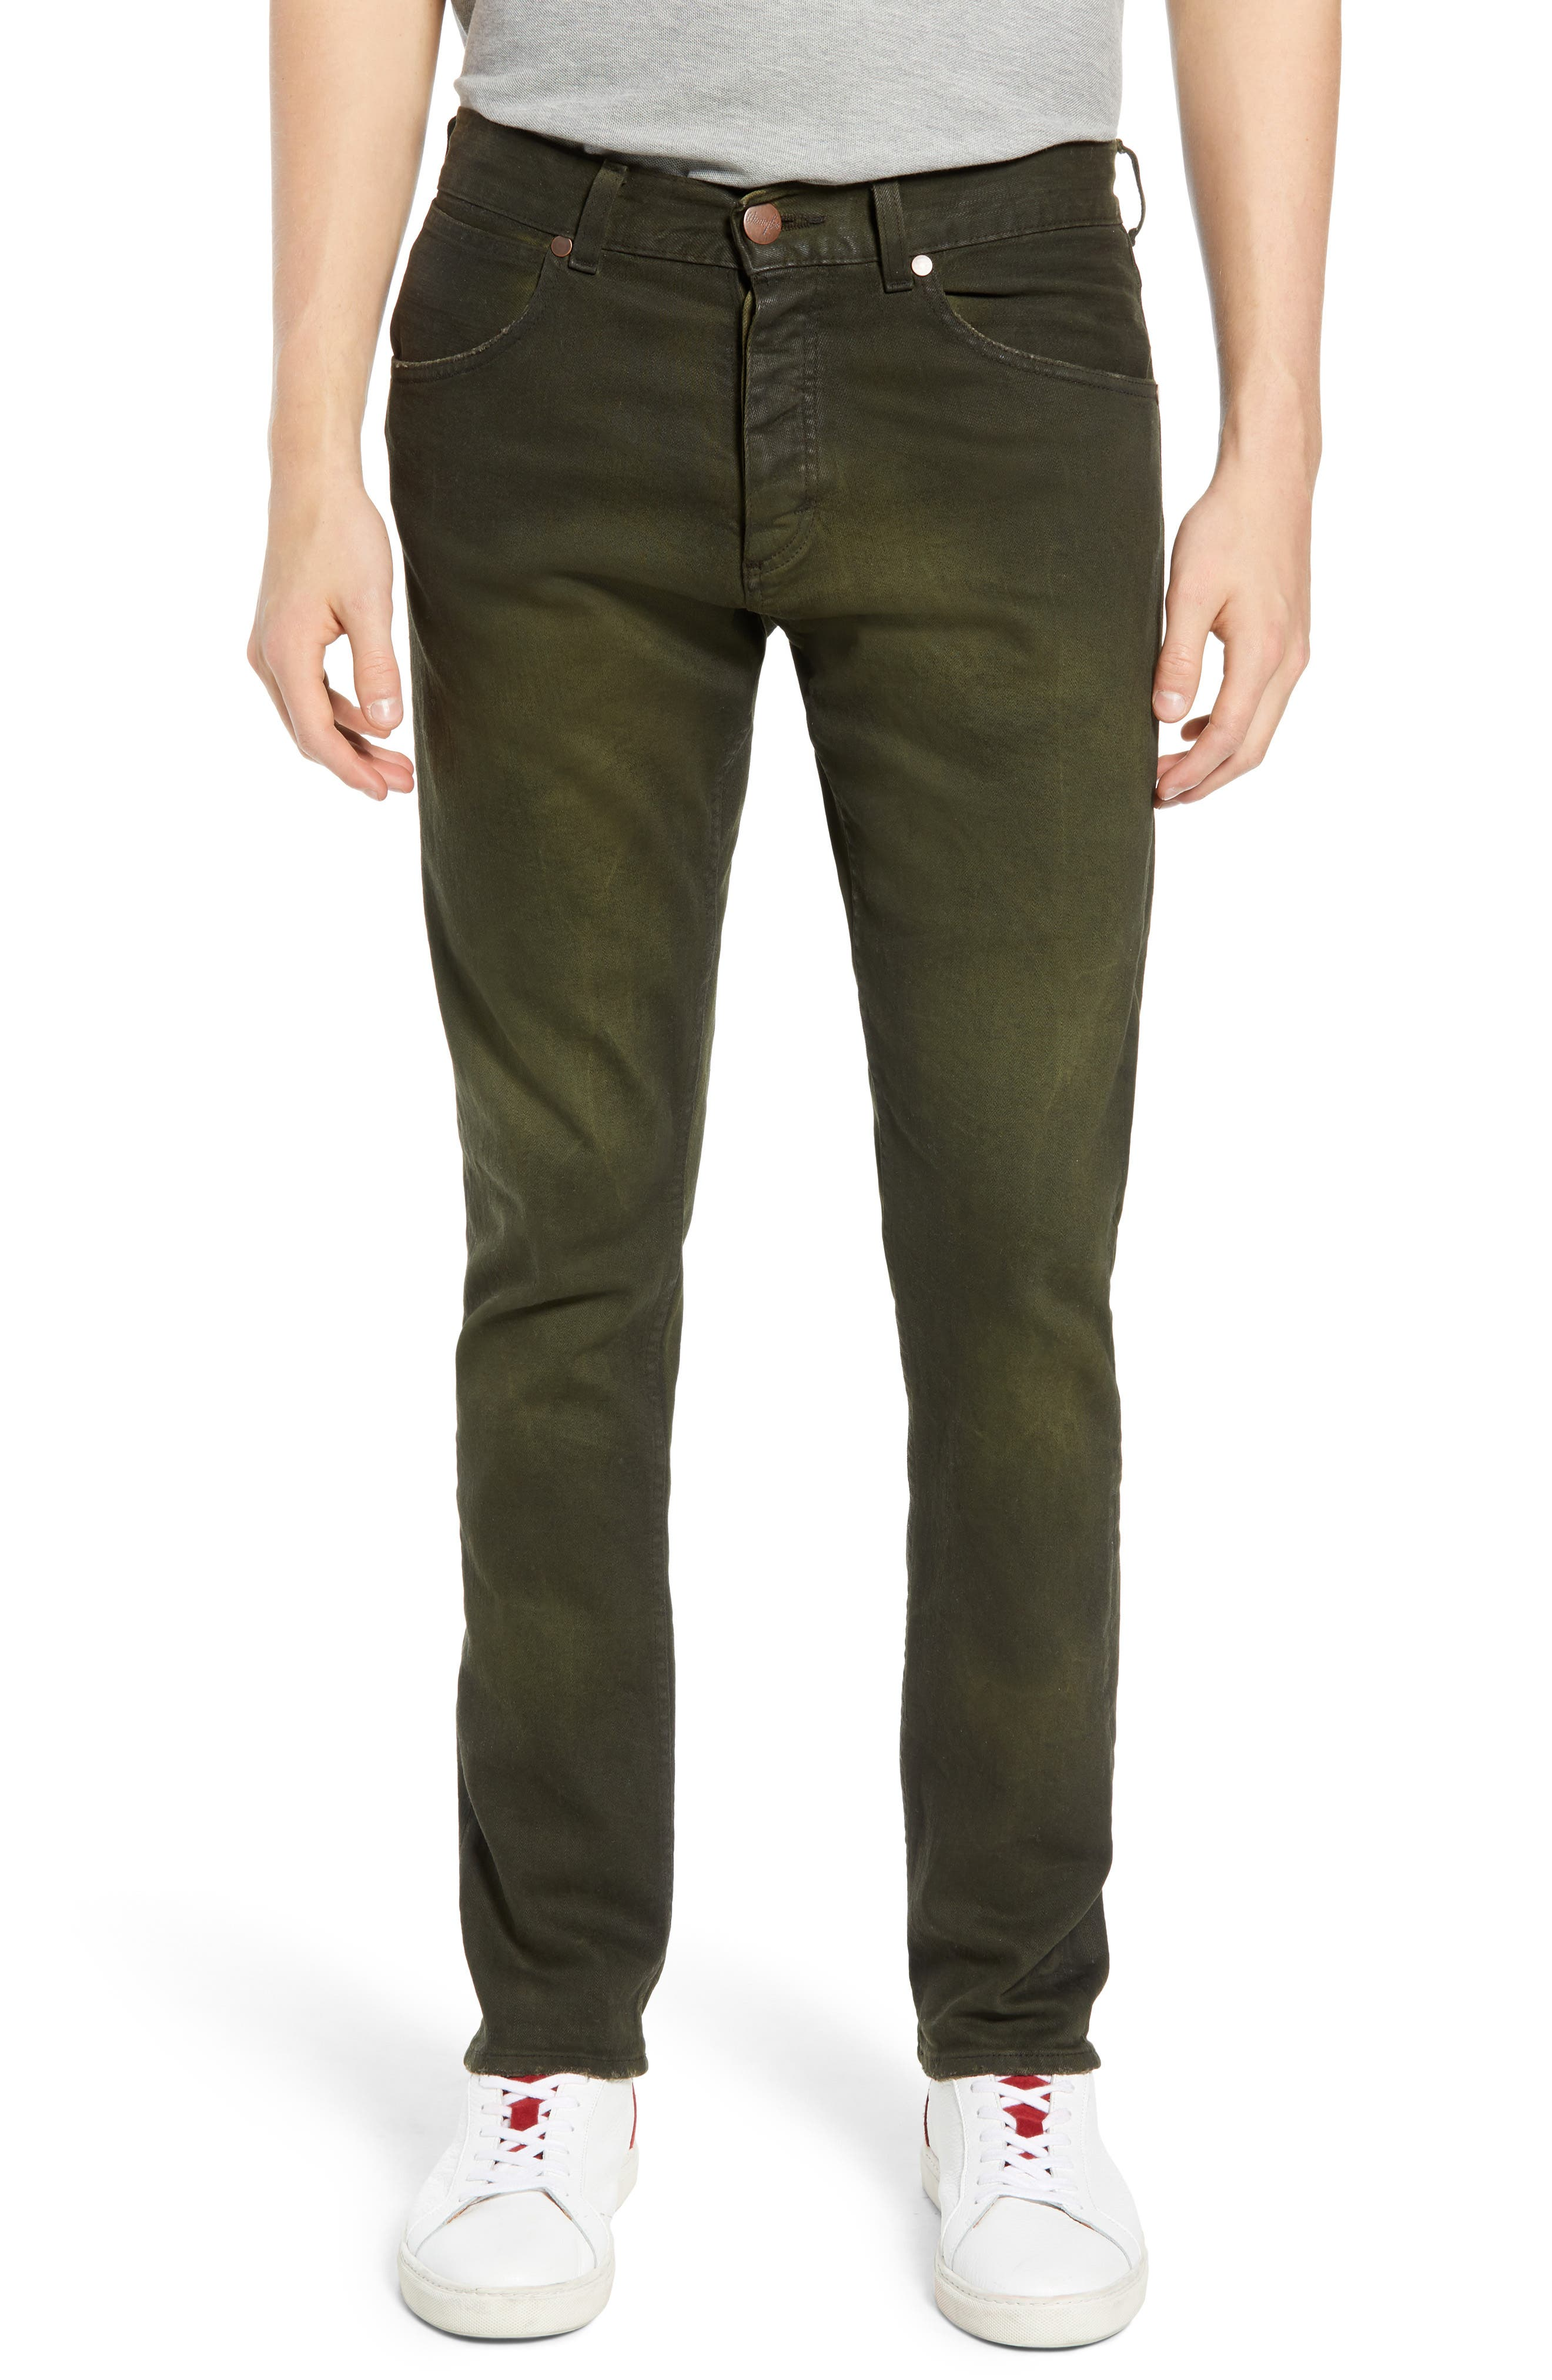 Larston Slim Fit Jeans,                             Main thumbnail 1, color,                             ROVER GREEN